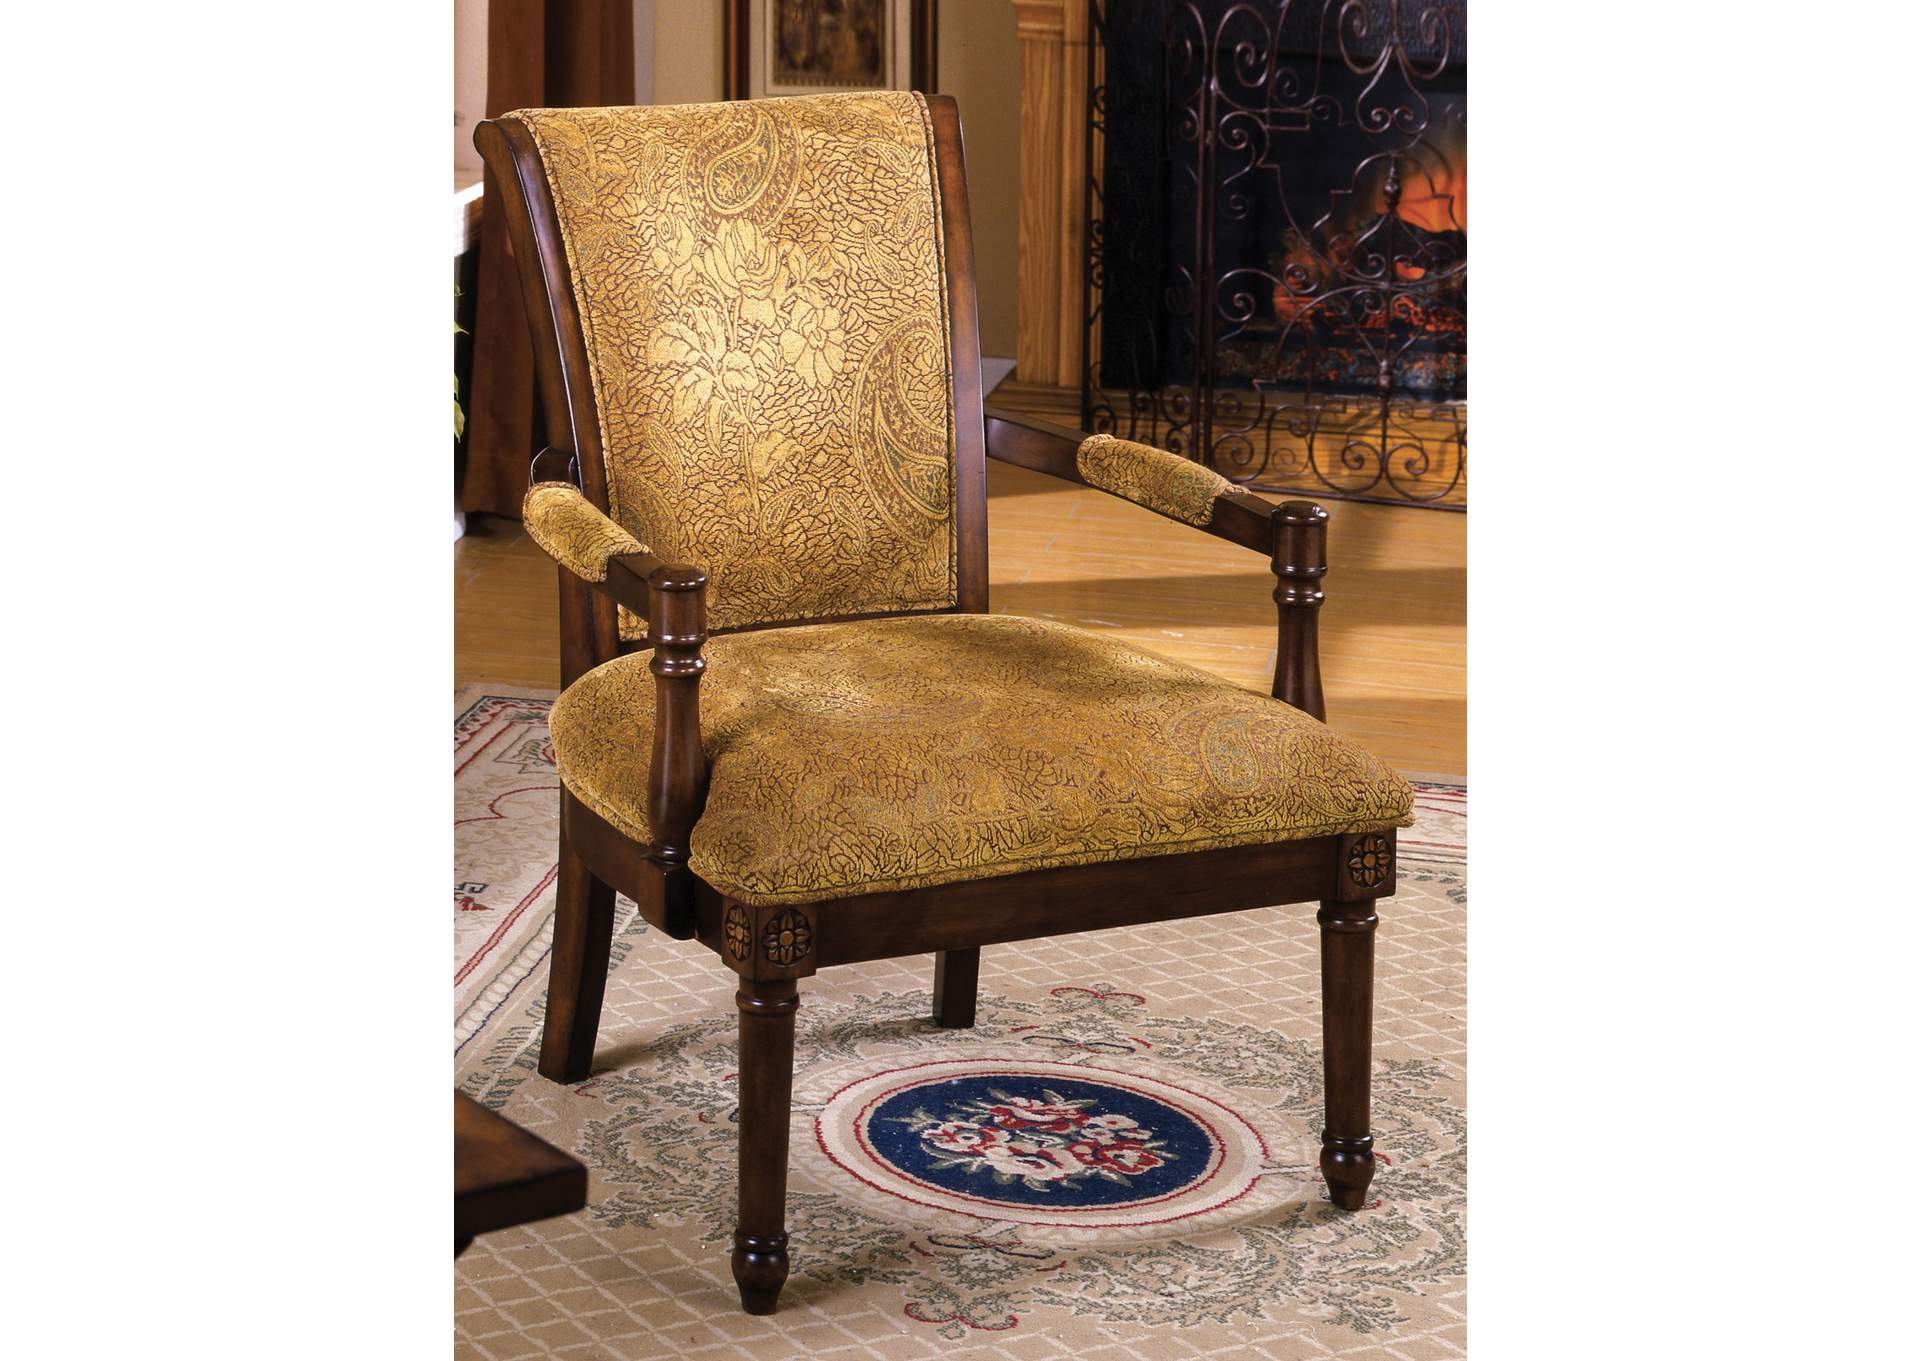 Stupendous 252982 Stockton Rustic Fabric Pattern Accent Chair W Hand Unemploymentrelief Wooden Chair Designs For Living Room Unemploymentrelieforg